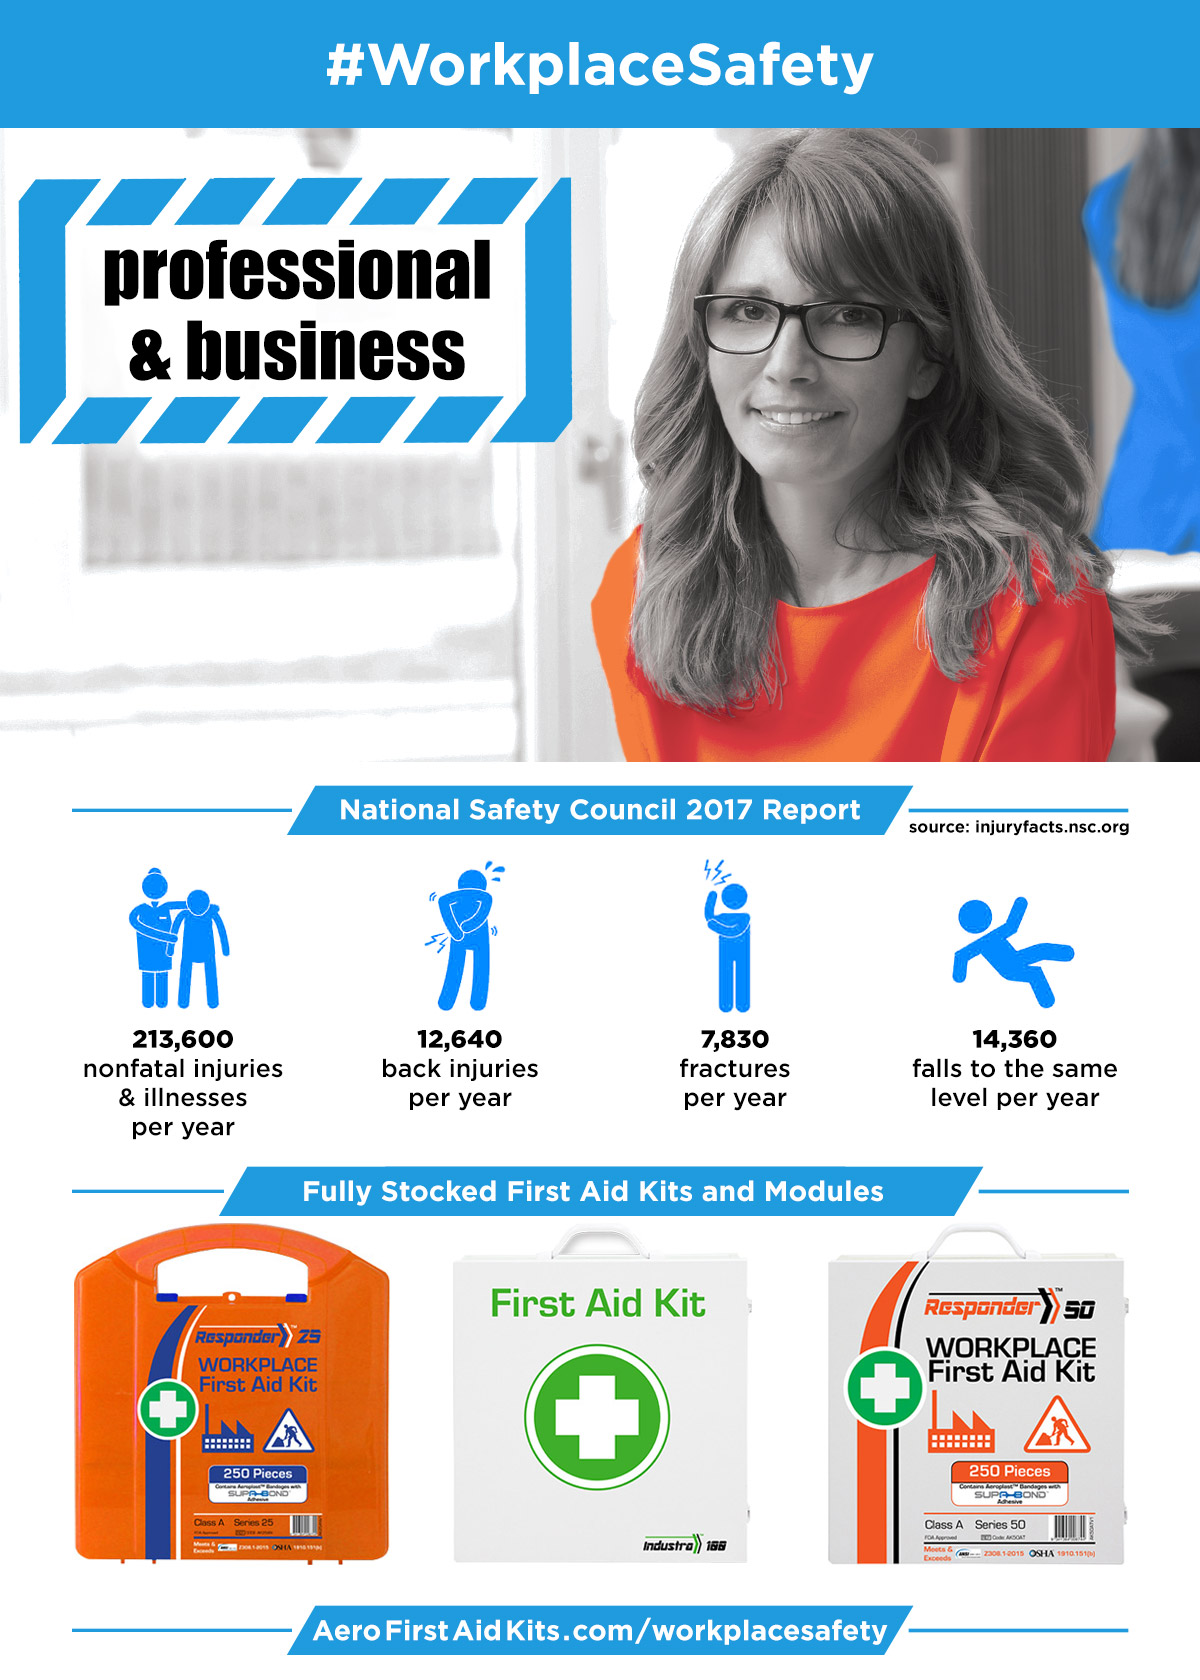 Workplace Safety - Professional and Business Services